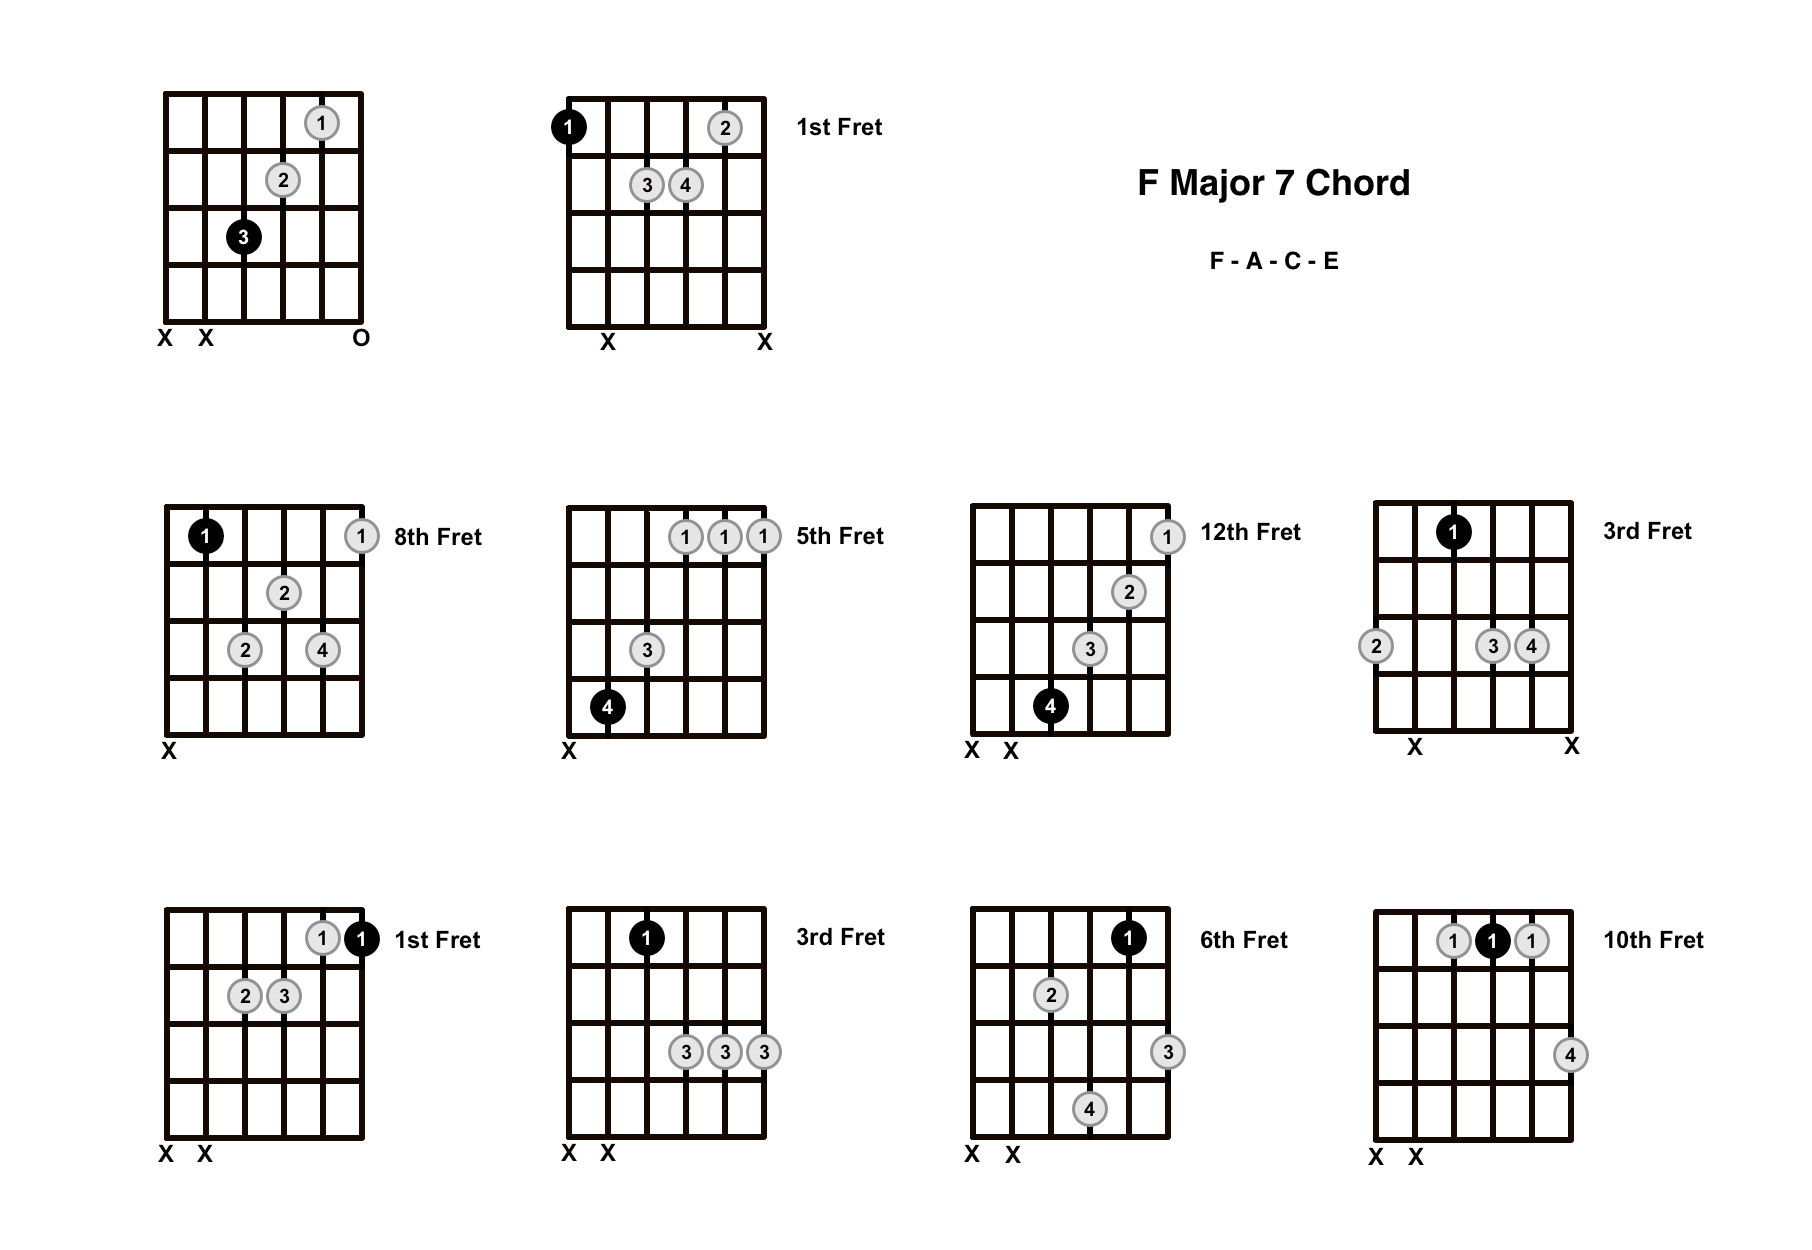 F Major 7 Chord On The Guitar (F Maj 7) – Diagrams, Finger Positions and Theory